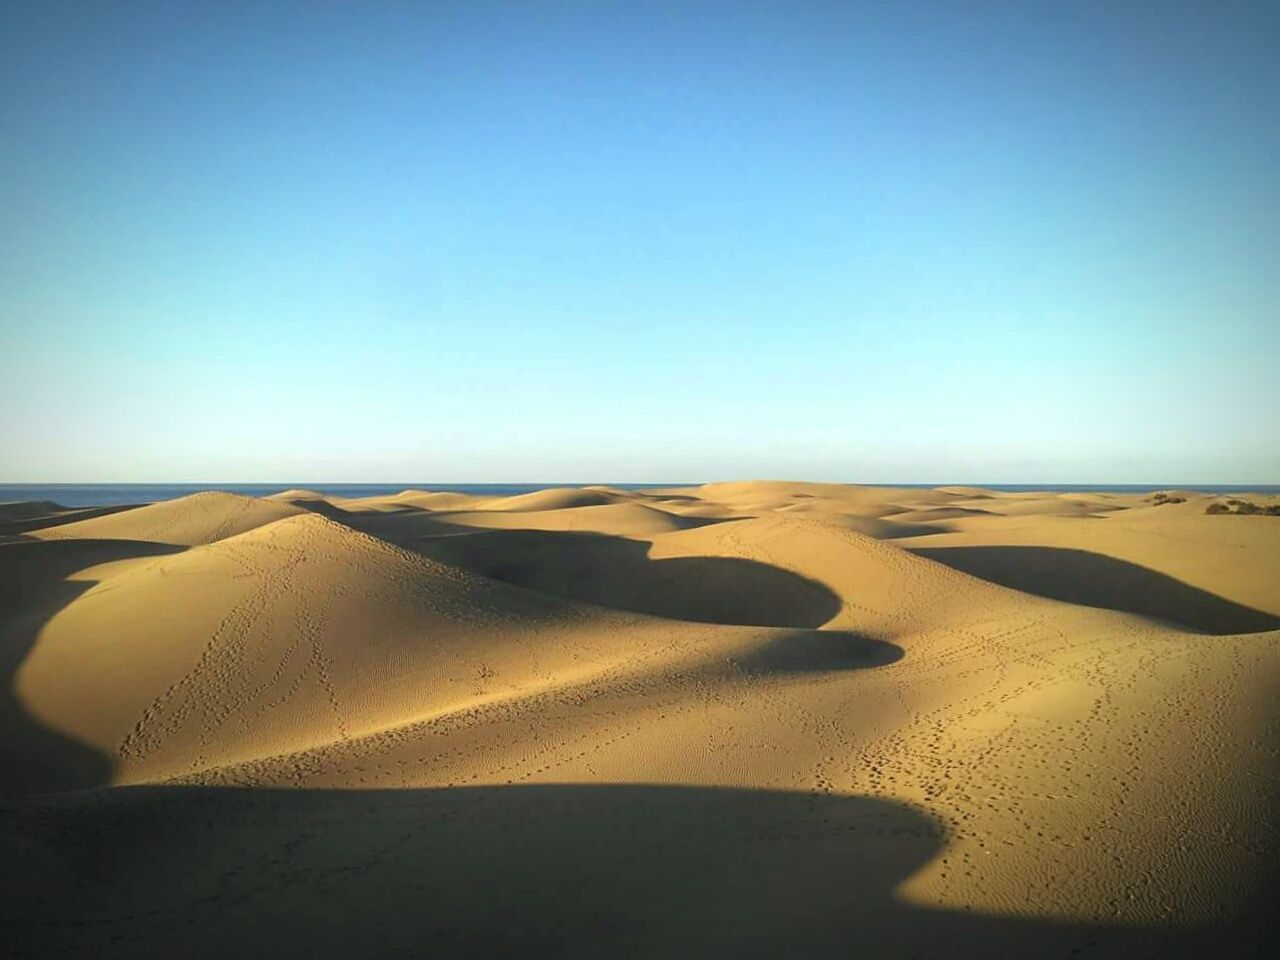 Dunes Sand Dunes Sand Distant Sea Blue Sky Golden Sand Gran Canaria First Eyeem Photo